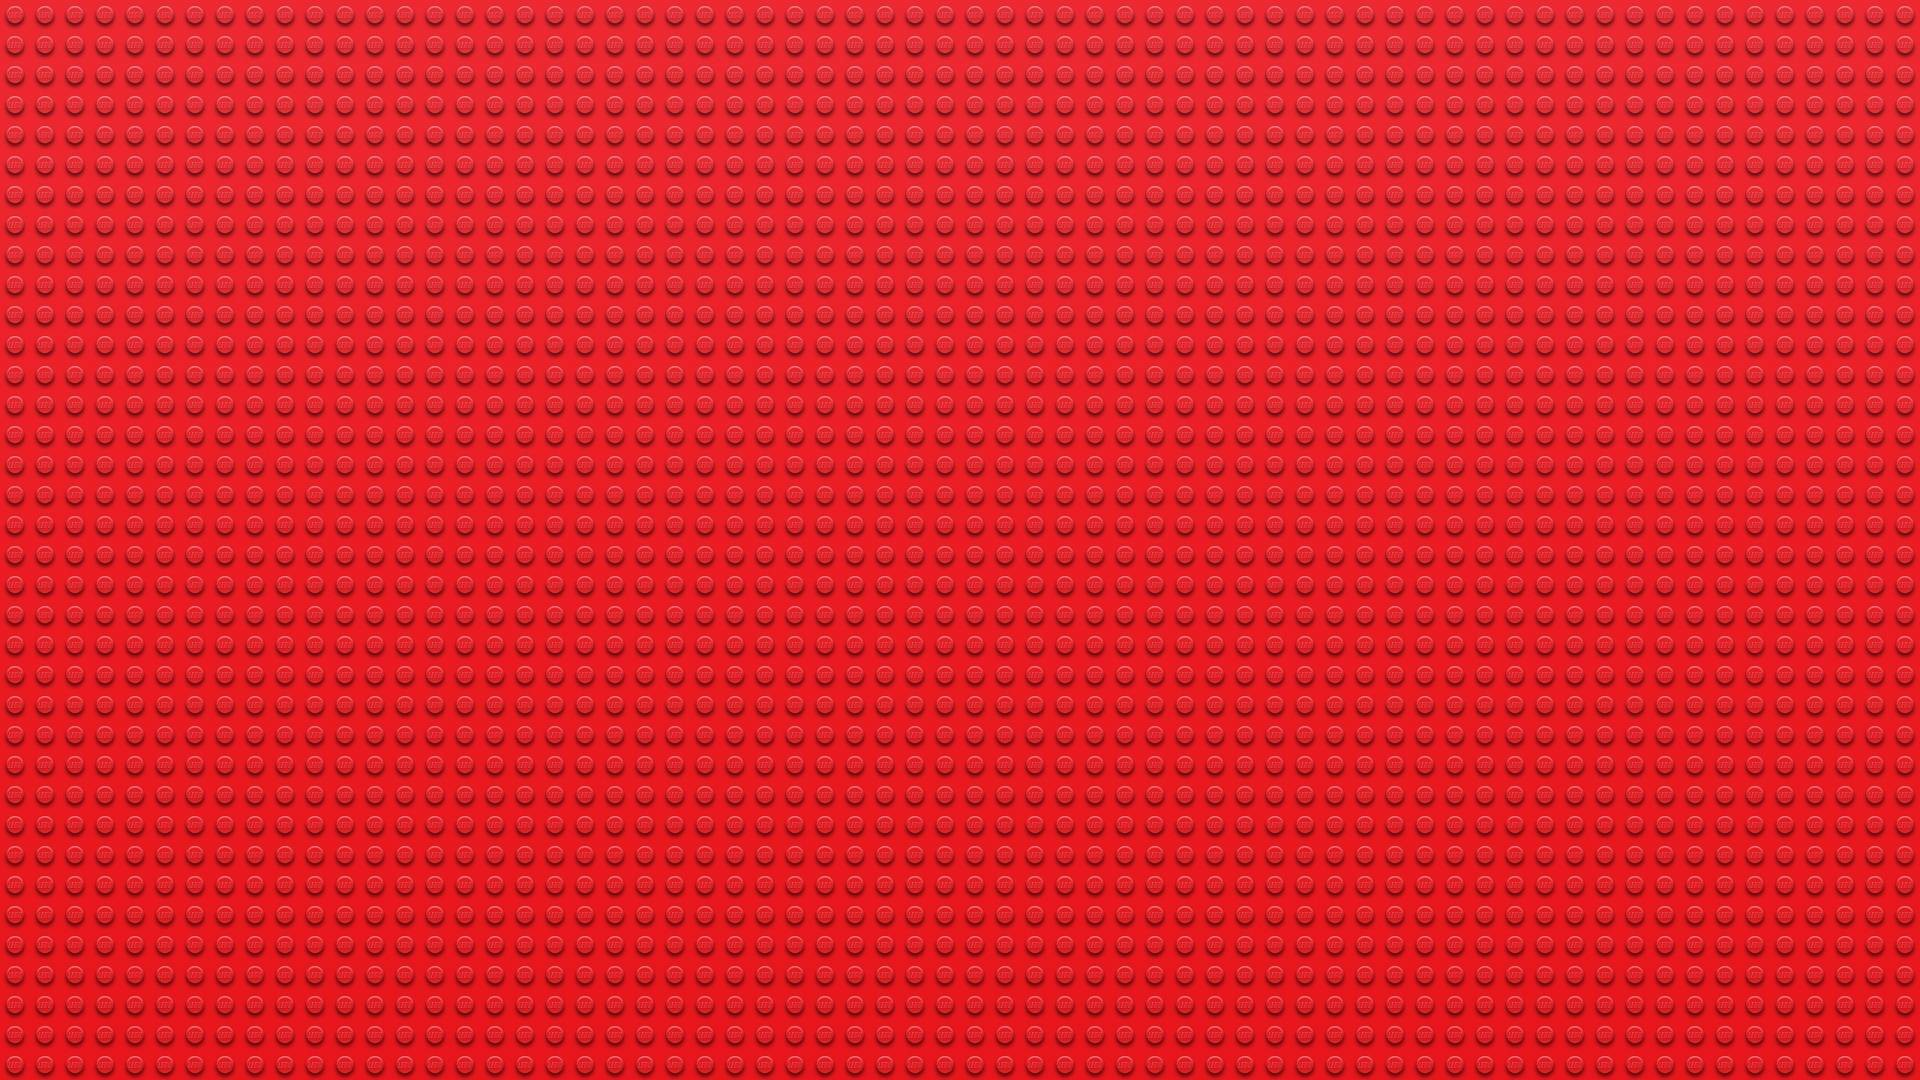 1920x1080 Red Studs Lego wallpaper - 964583